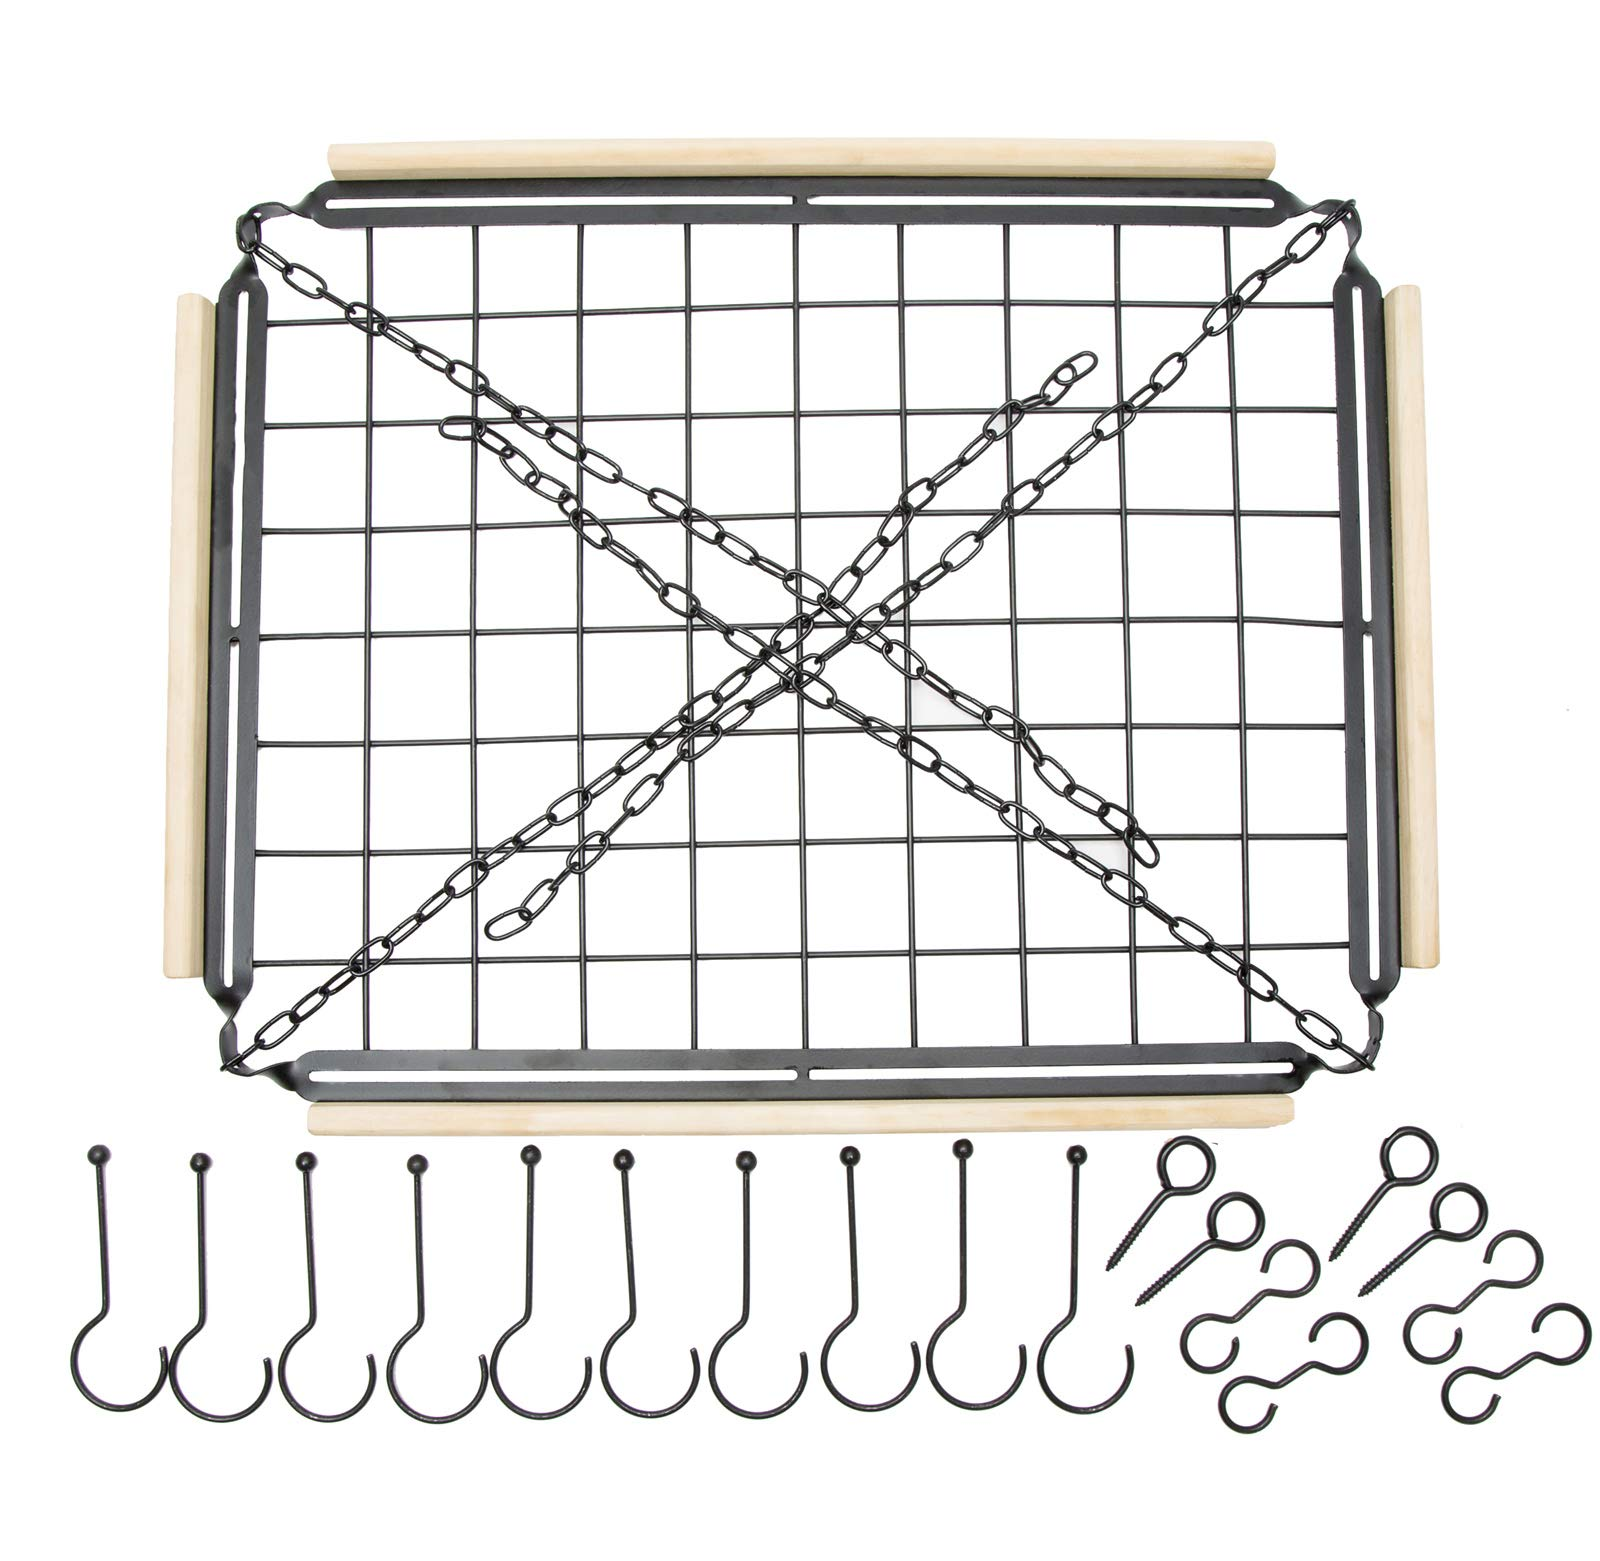 Soduku Pot Pan Rack with Shelf Grid, Ceiling Mounted Hanging Multi-Purpose Wood & Metal Cookware Hanger Organizer Kitchen Storage with 10 Hooks by SODUKU (Image #4)